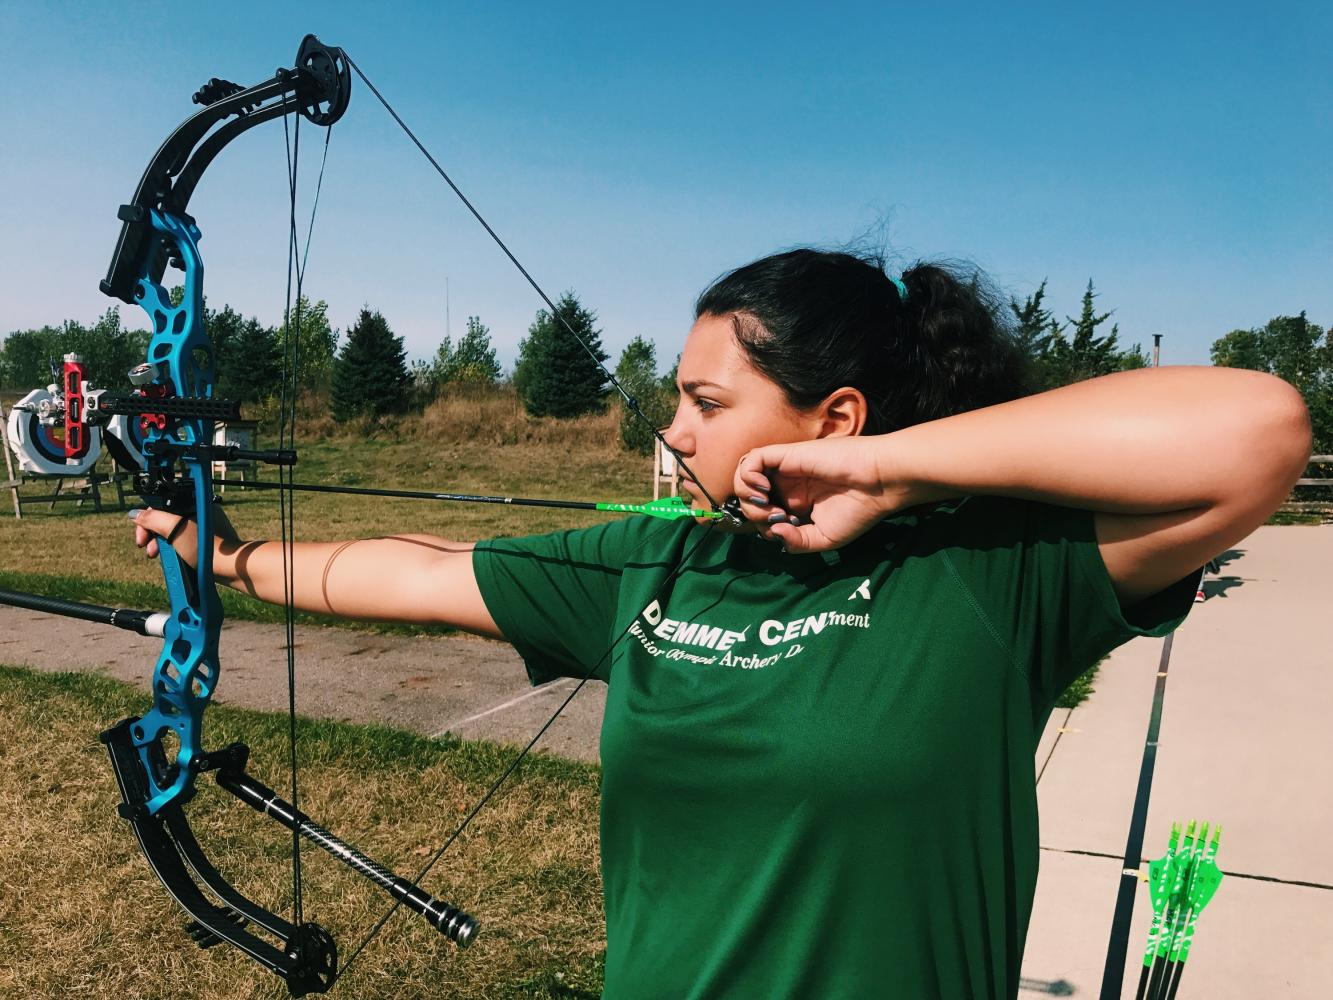 Maya Gulick made a passion out of archery